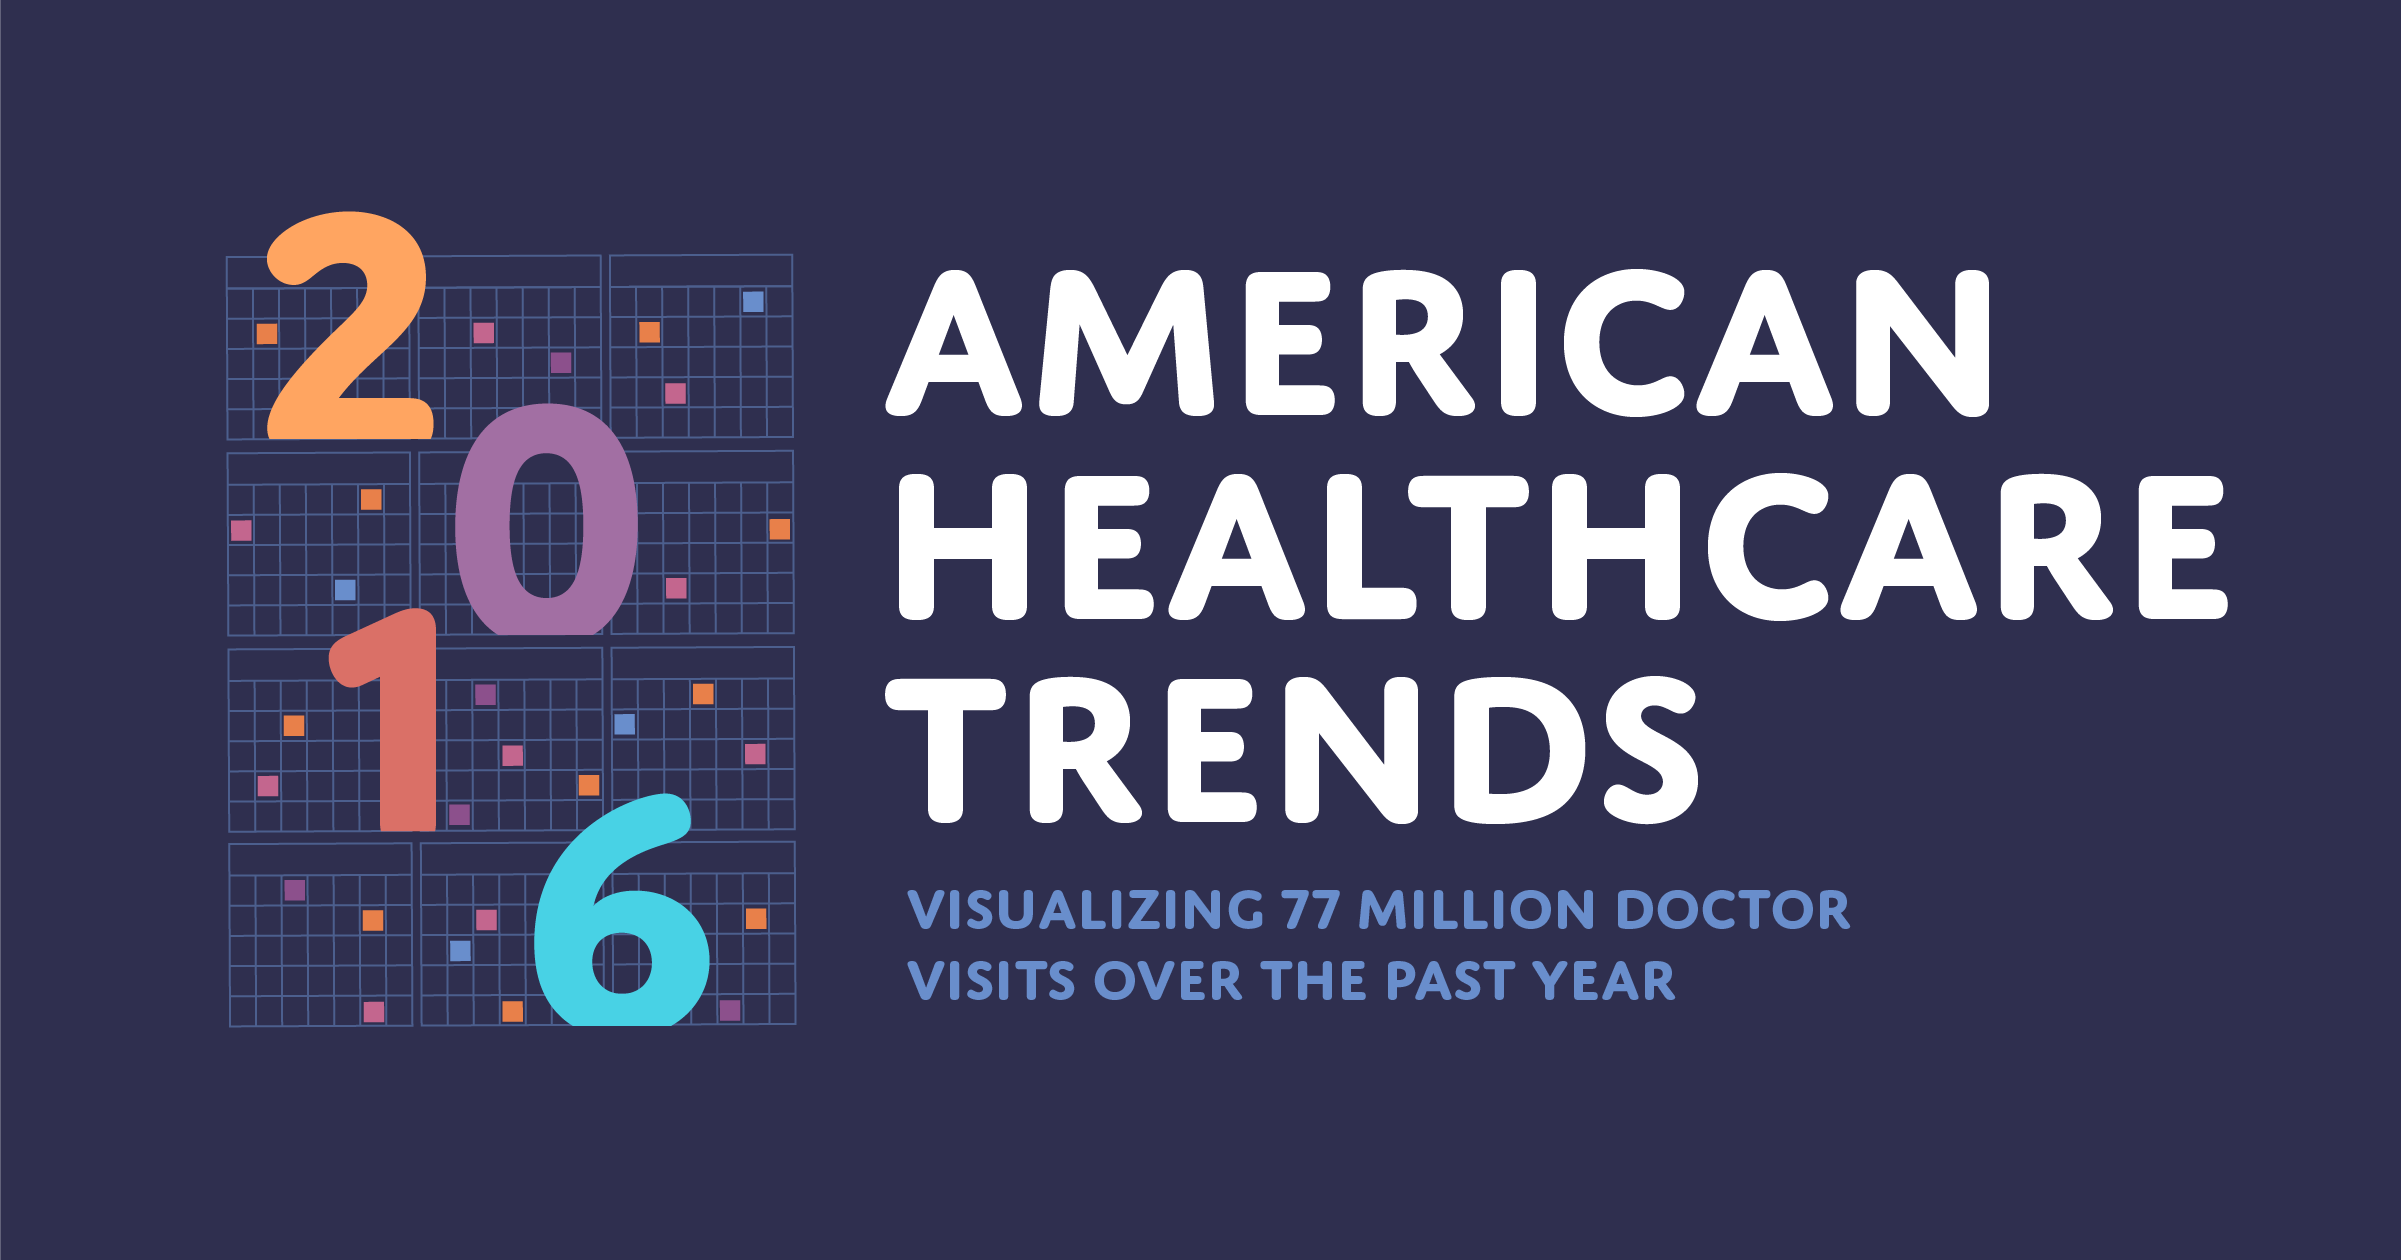 American healthcare trends in 2016